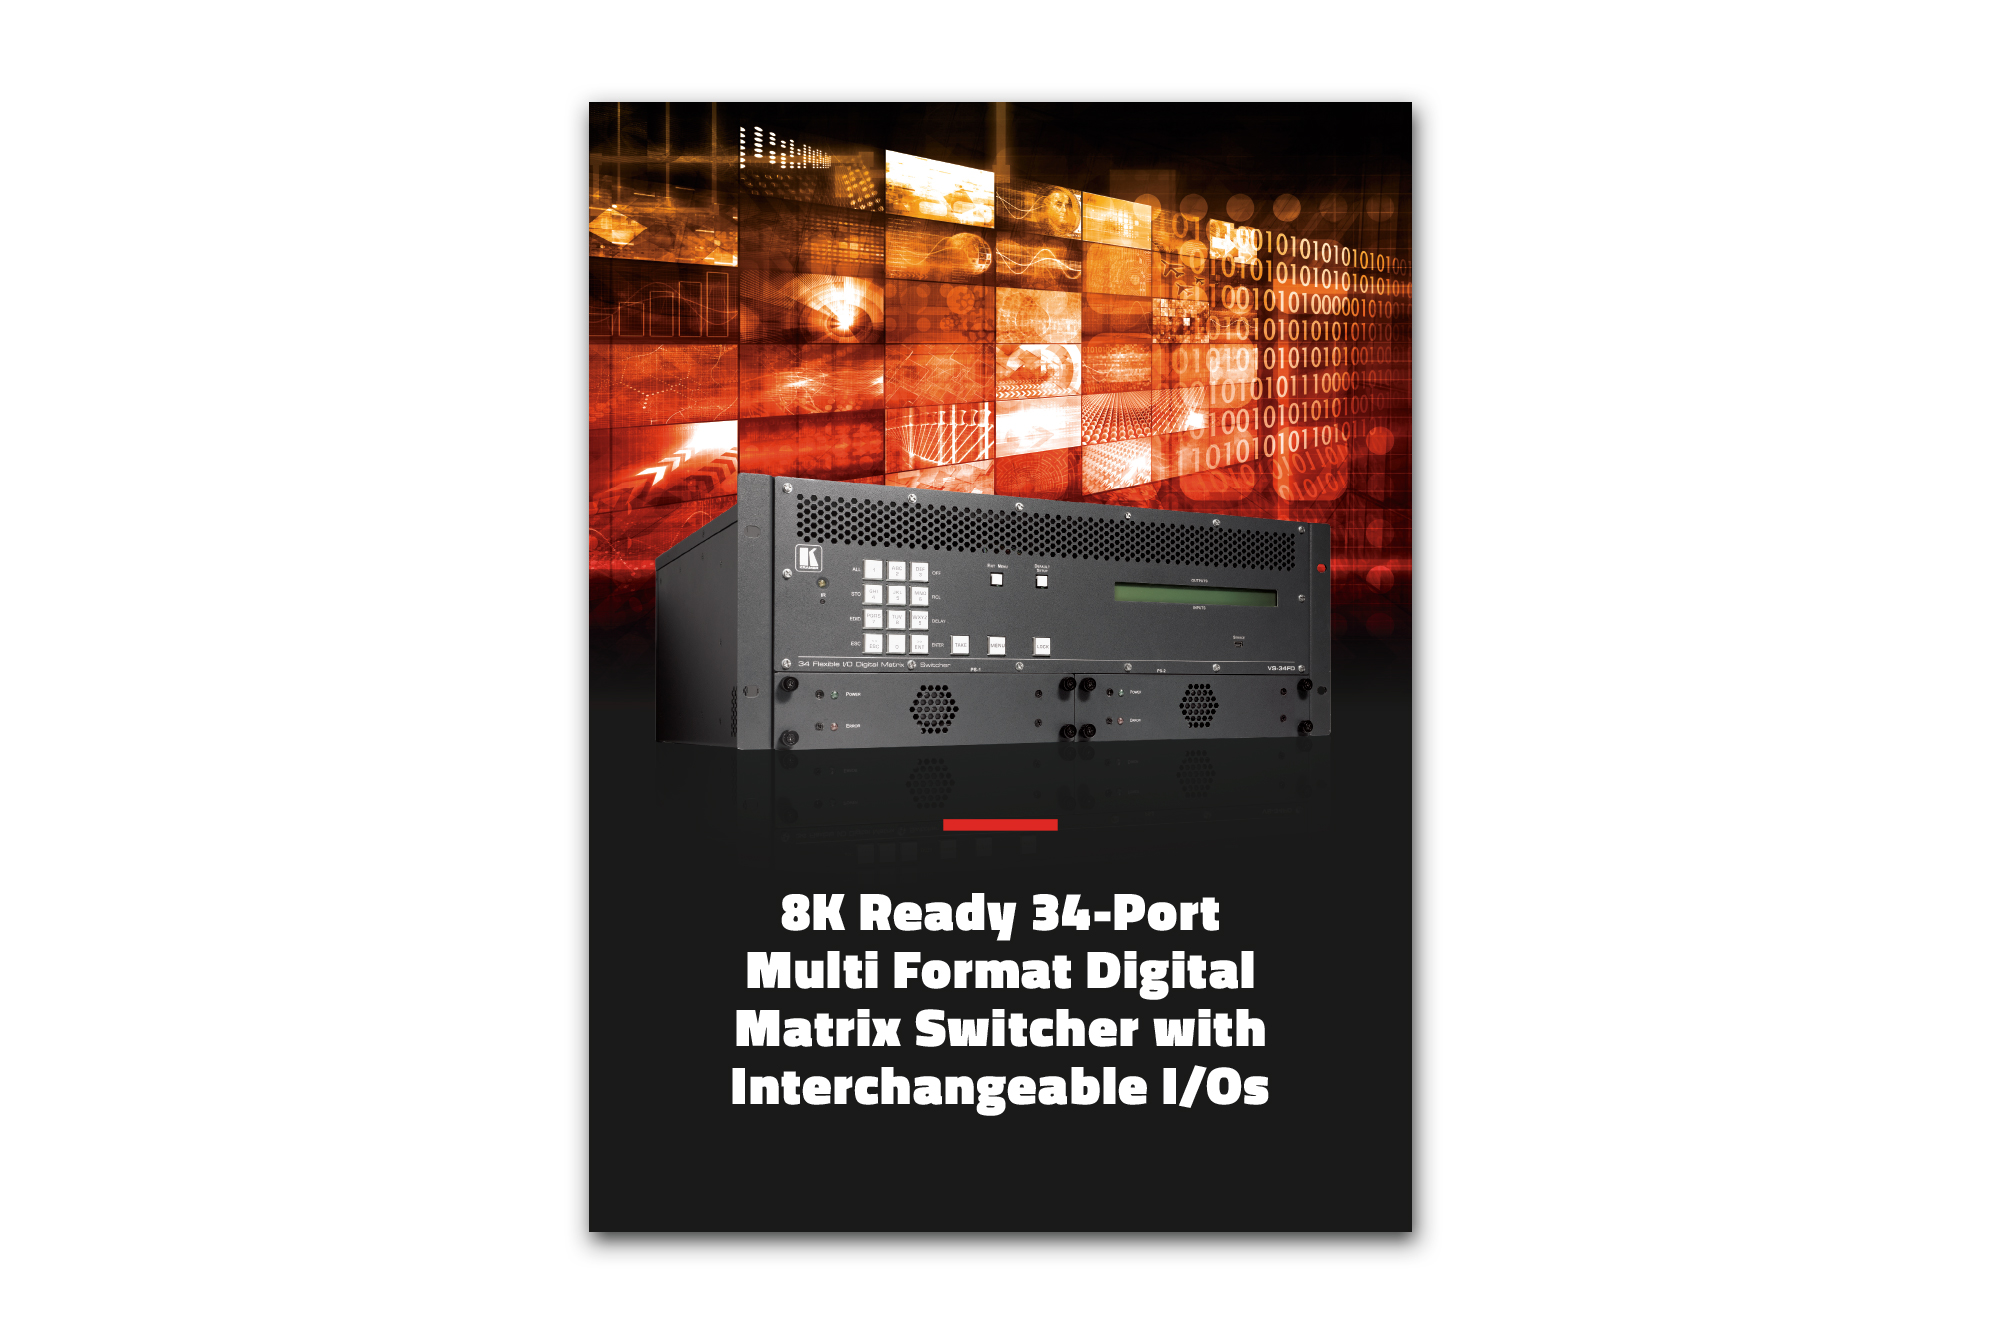 8K Ready Modular Matrix Switcher with Interchangeable IOs